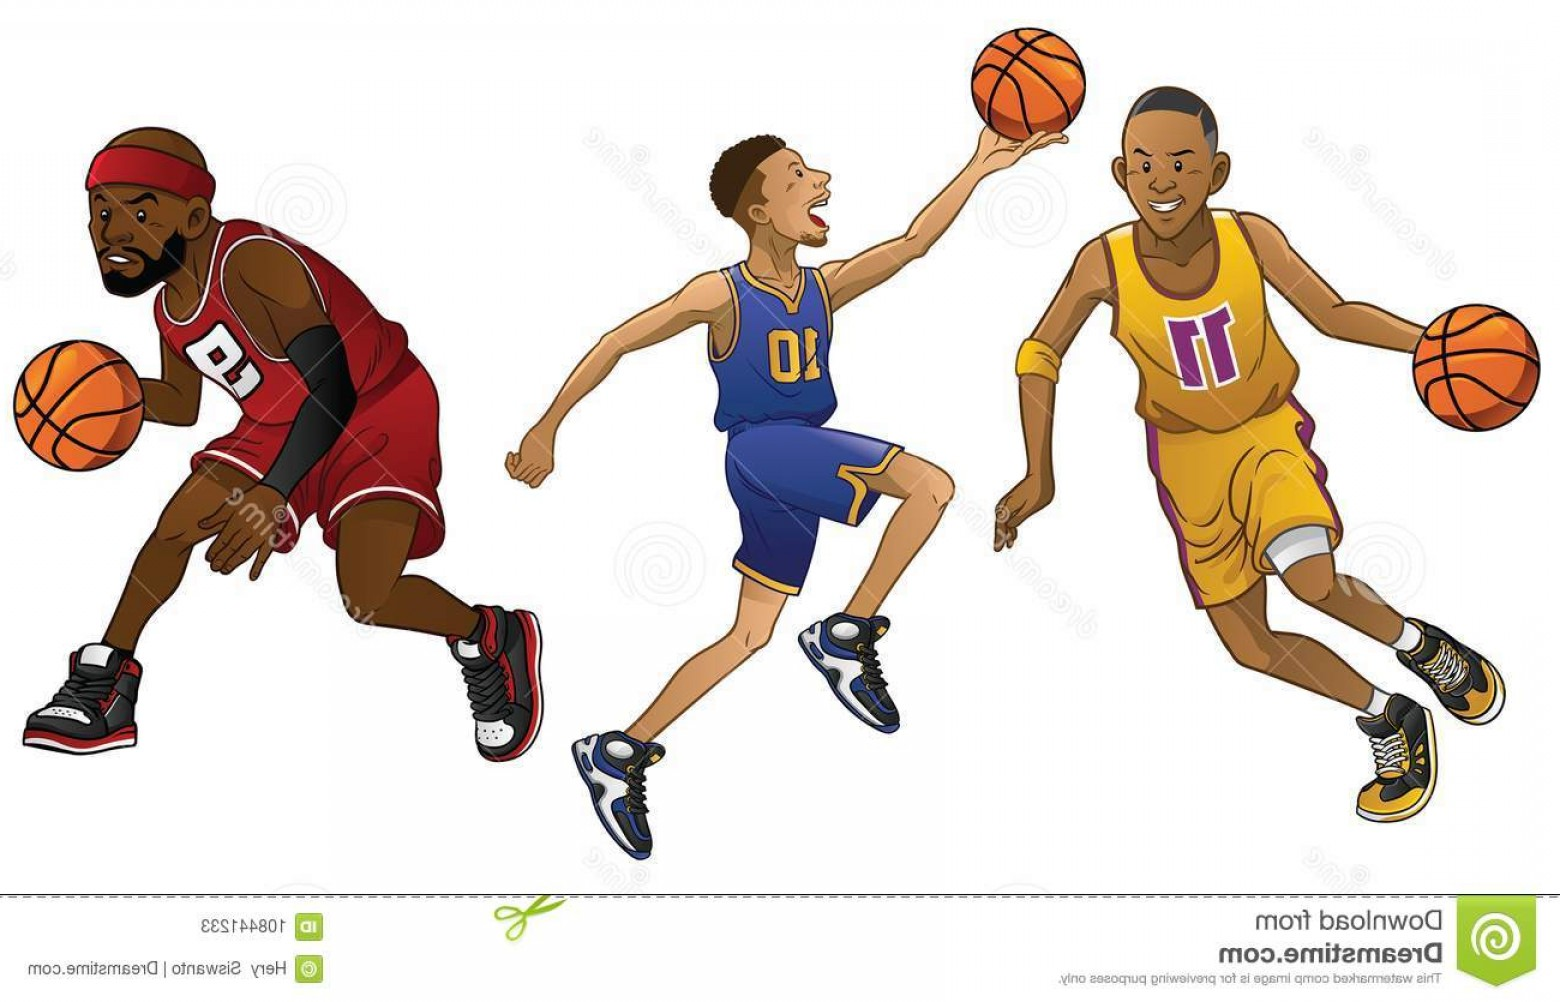 Cartoon Basketball Vector: Cartoon Basketball Players Set Vector Cartoon Basketball Players Set Image